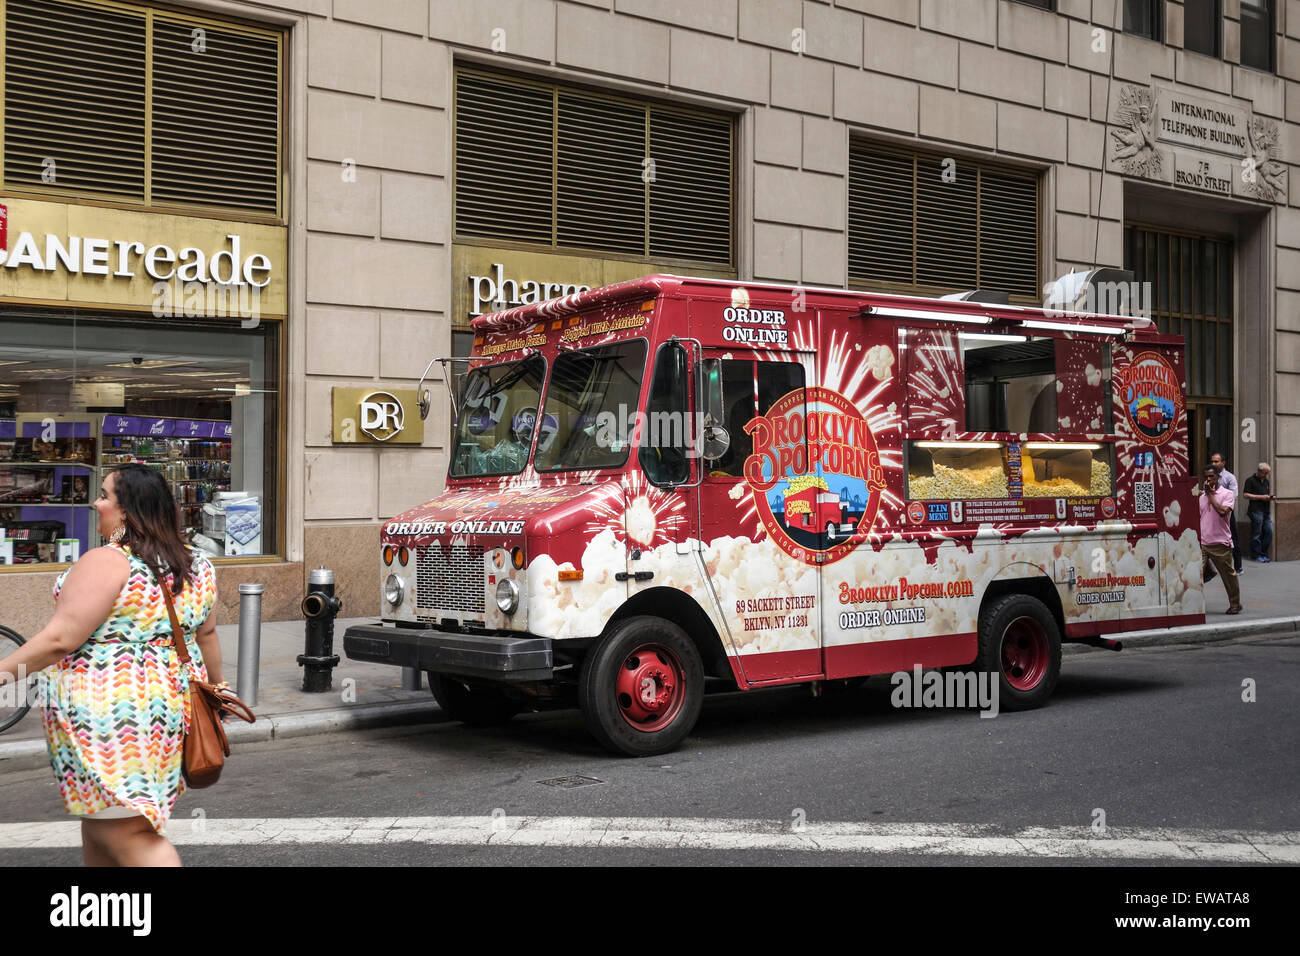 Food Truck Selling Popcorn In Financial District Of Manhattan New York City USA